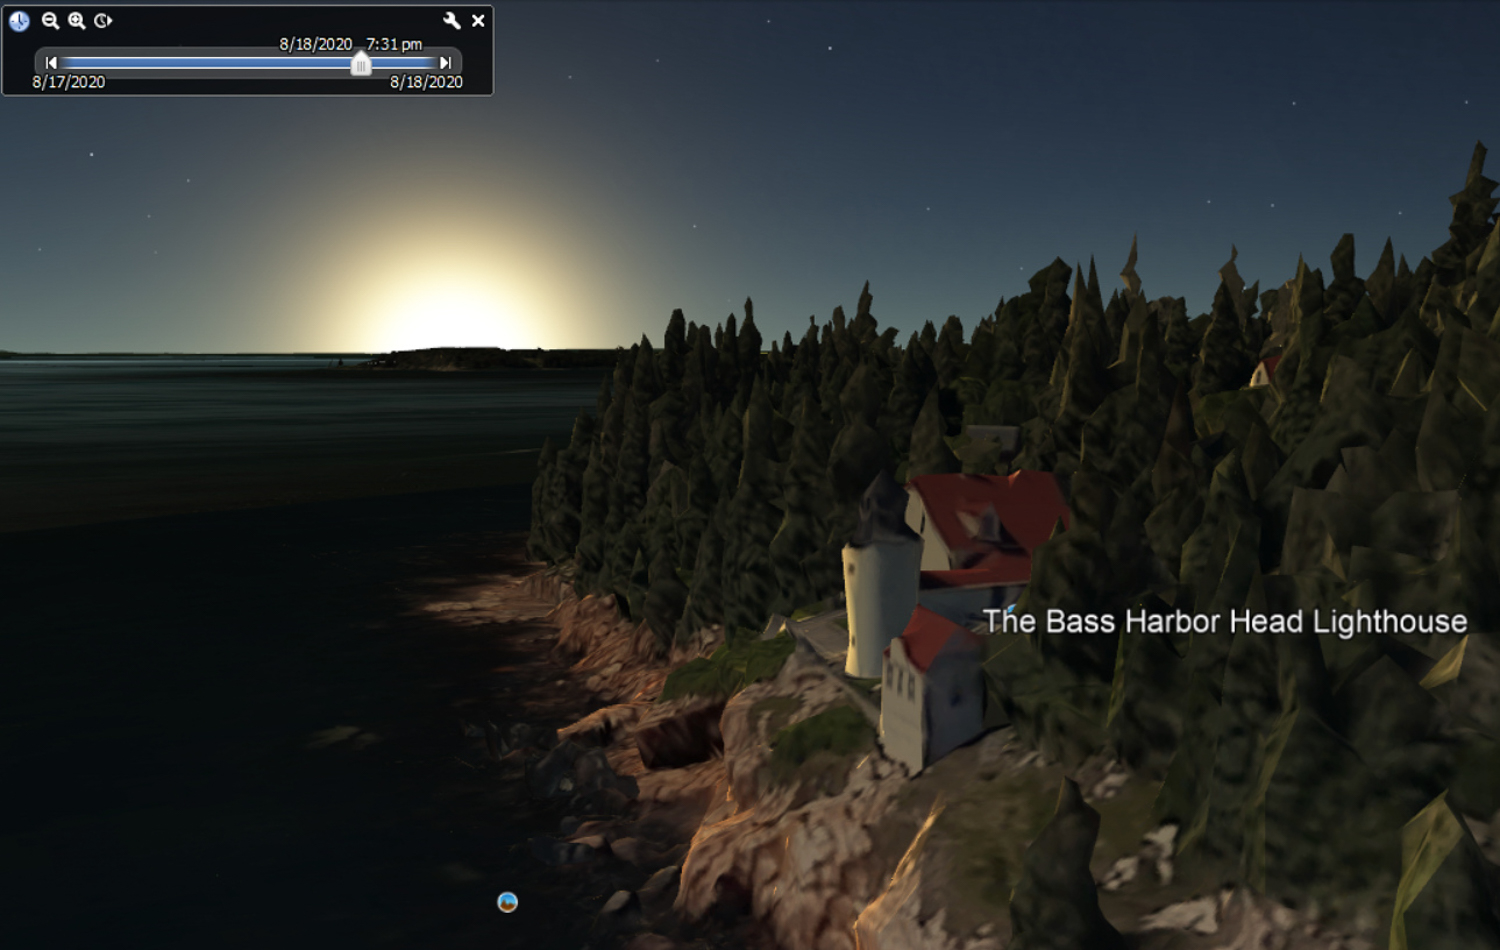 Bass Harbor Lighthouse Summer Sunset - Google Earth